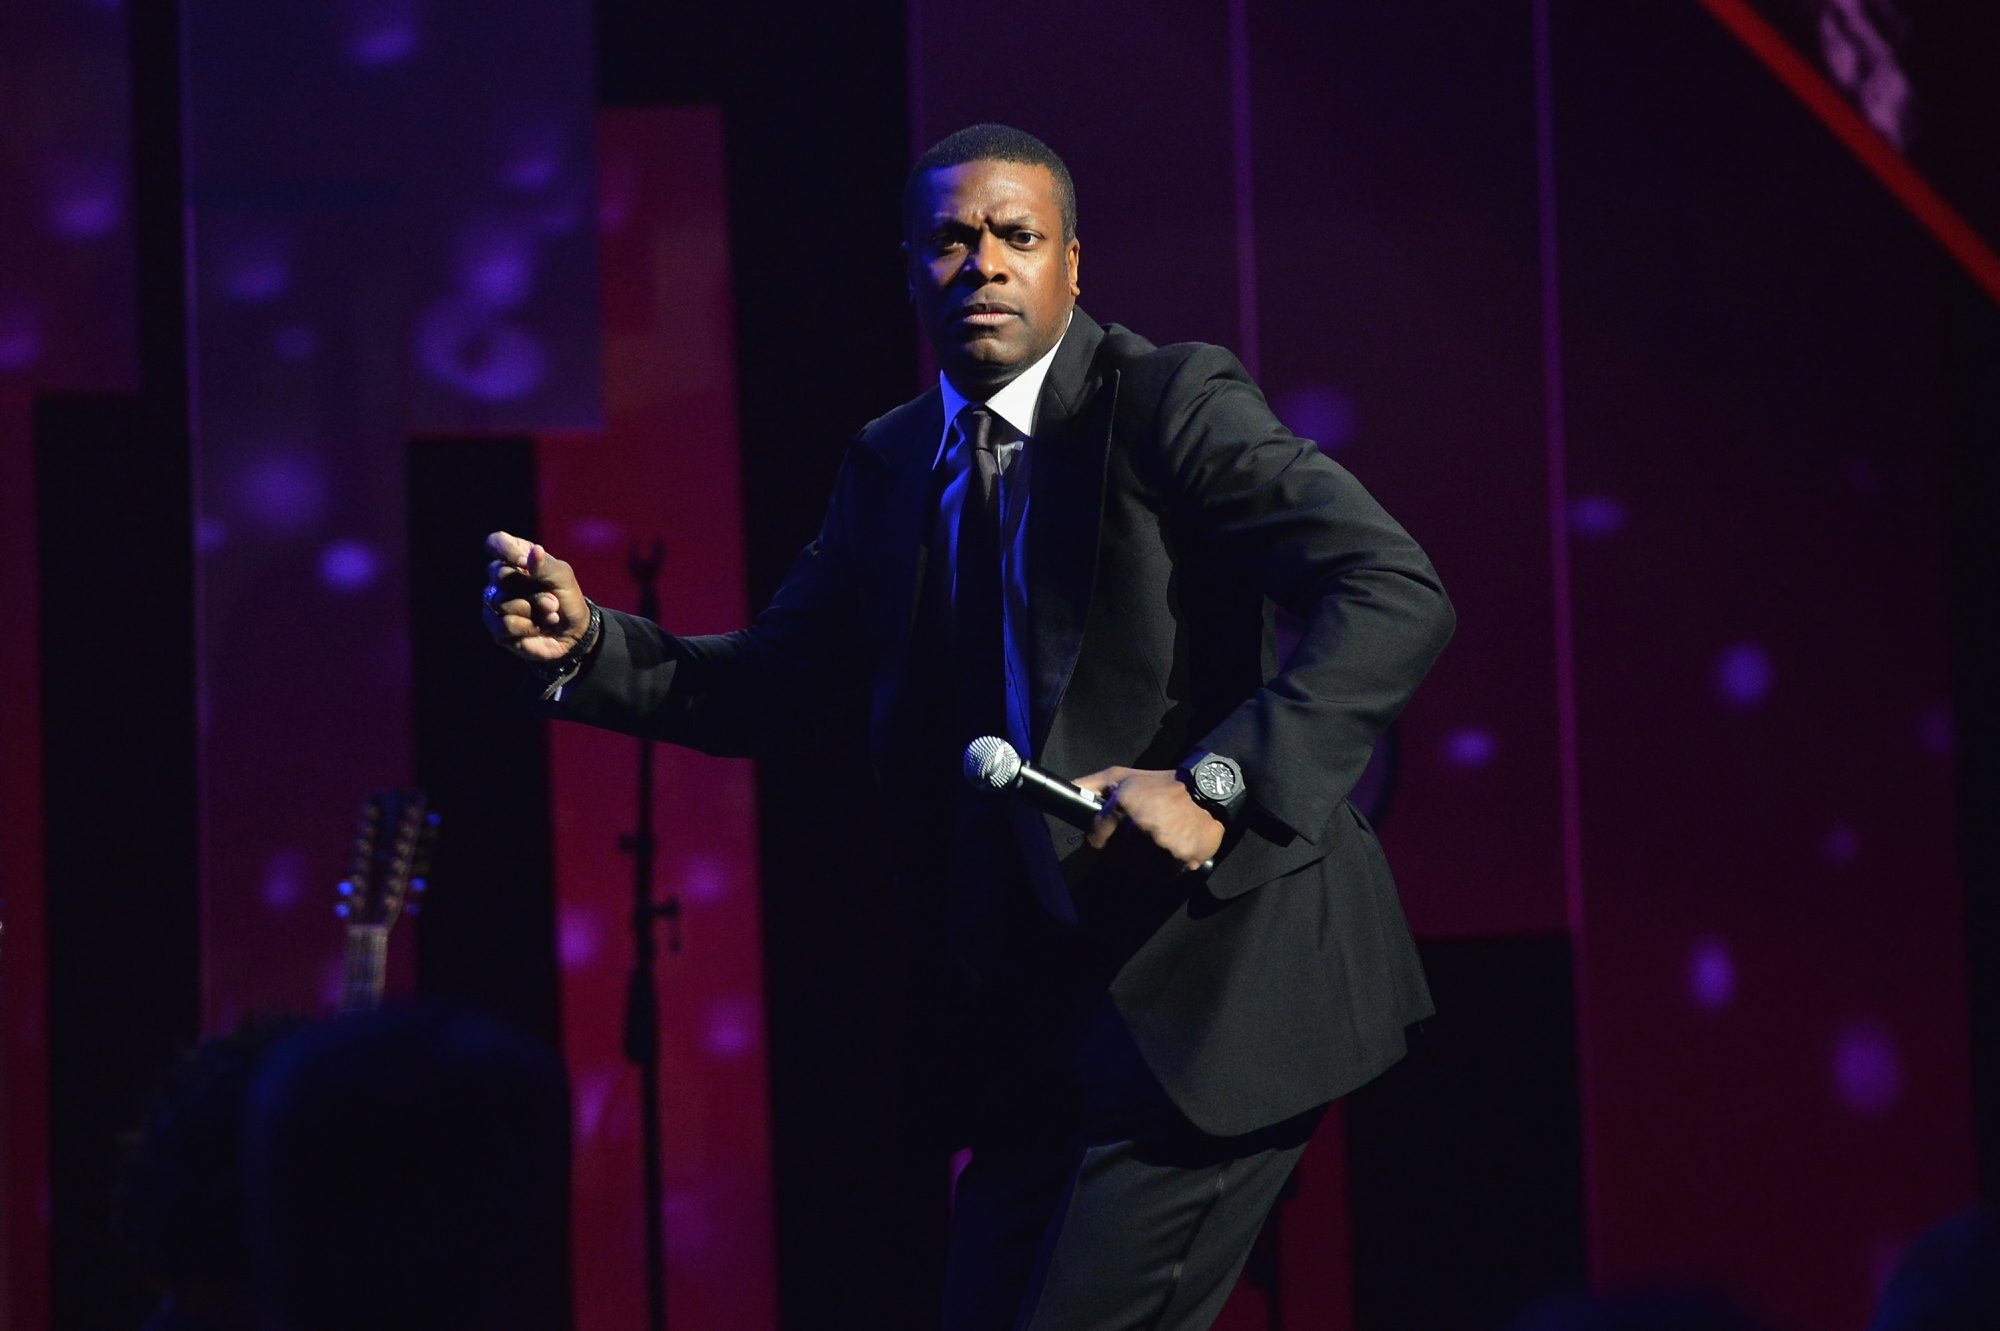 Chris Tucker's first full-length stand-up special debuted on Neflix last week.